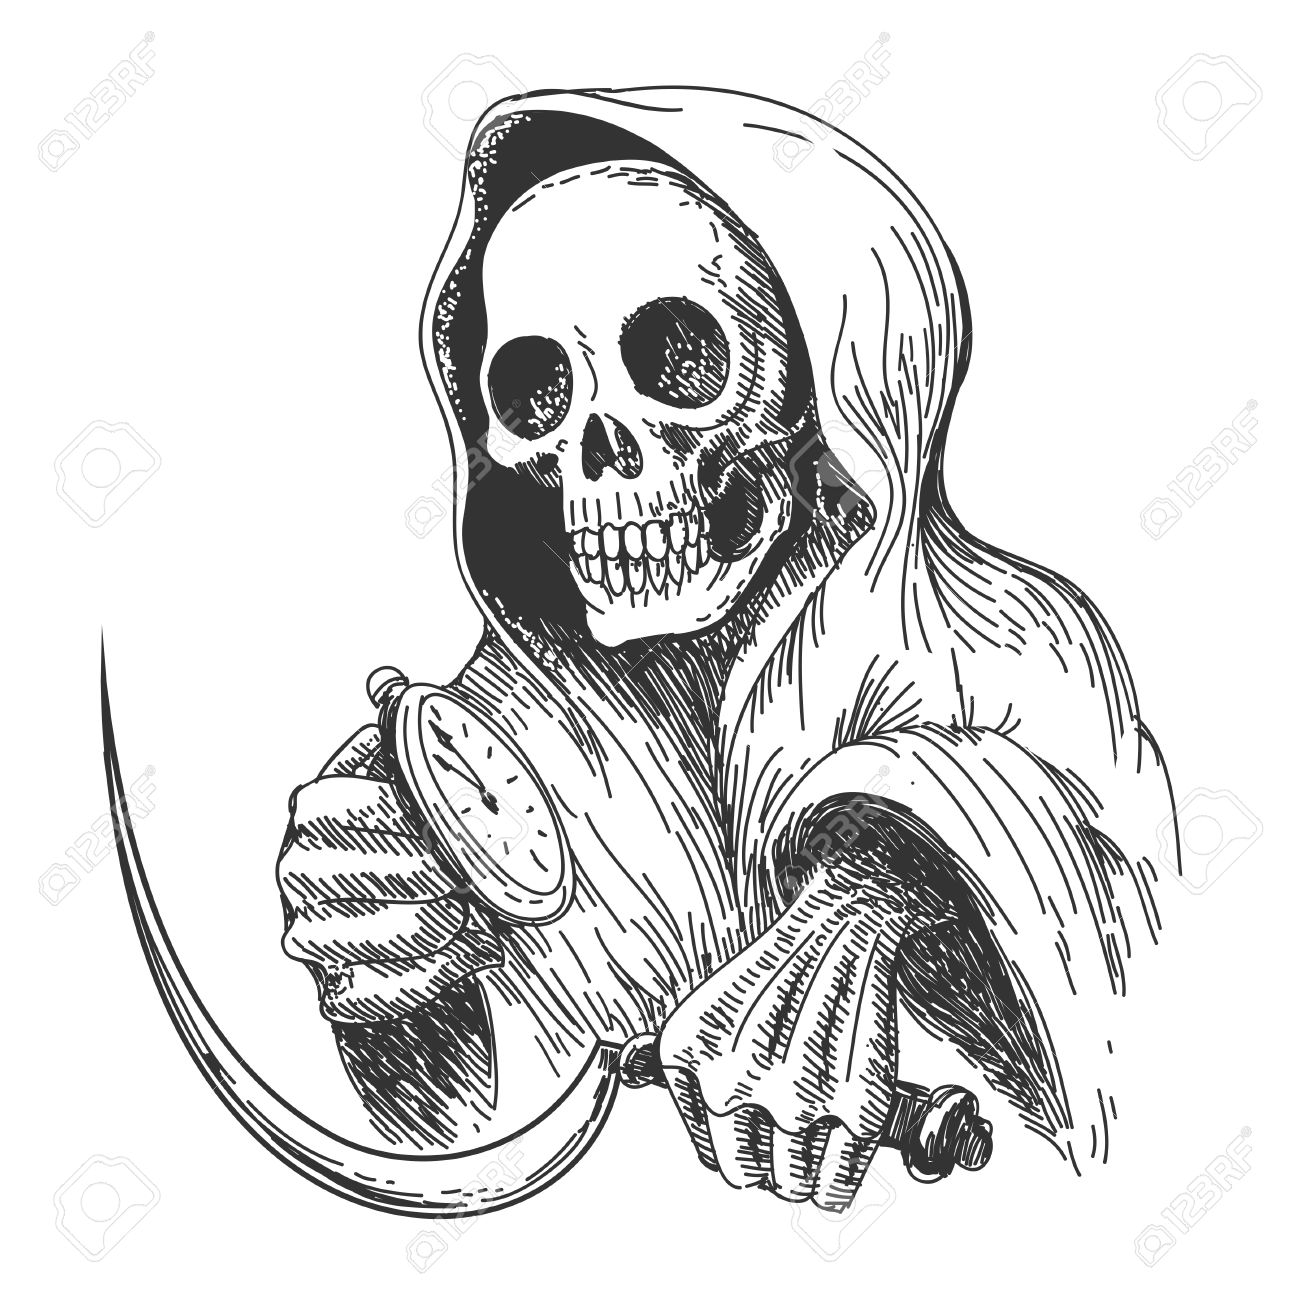 Death with sickle and pocket watch ink drawing style isolated on white stock